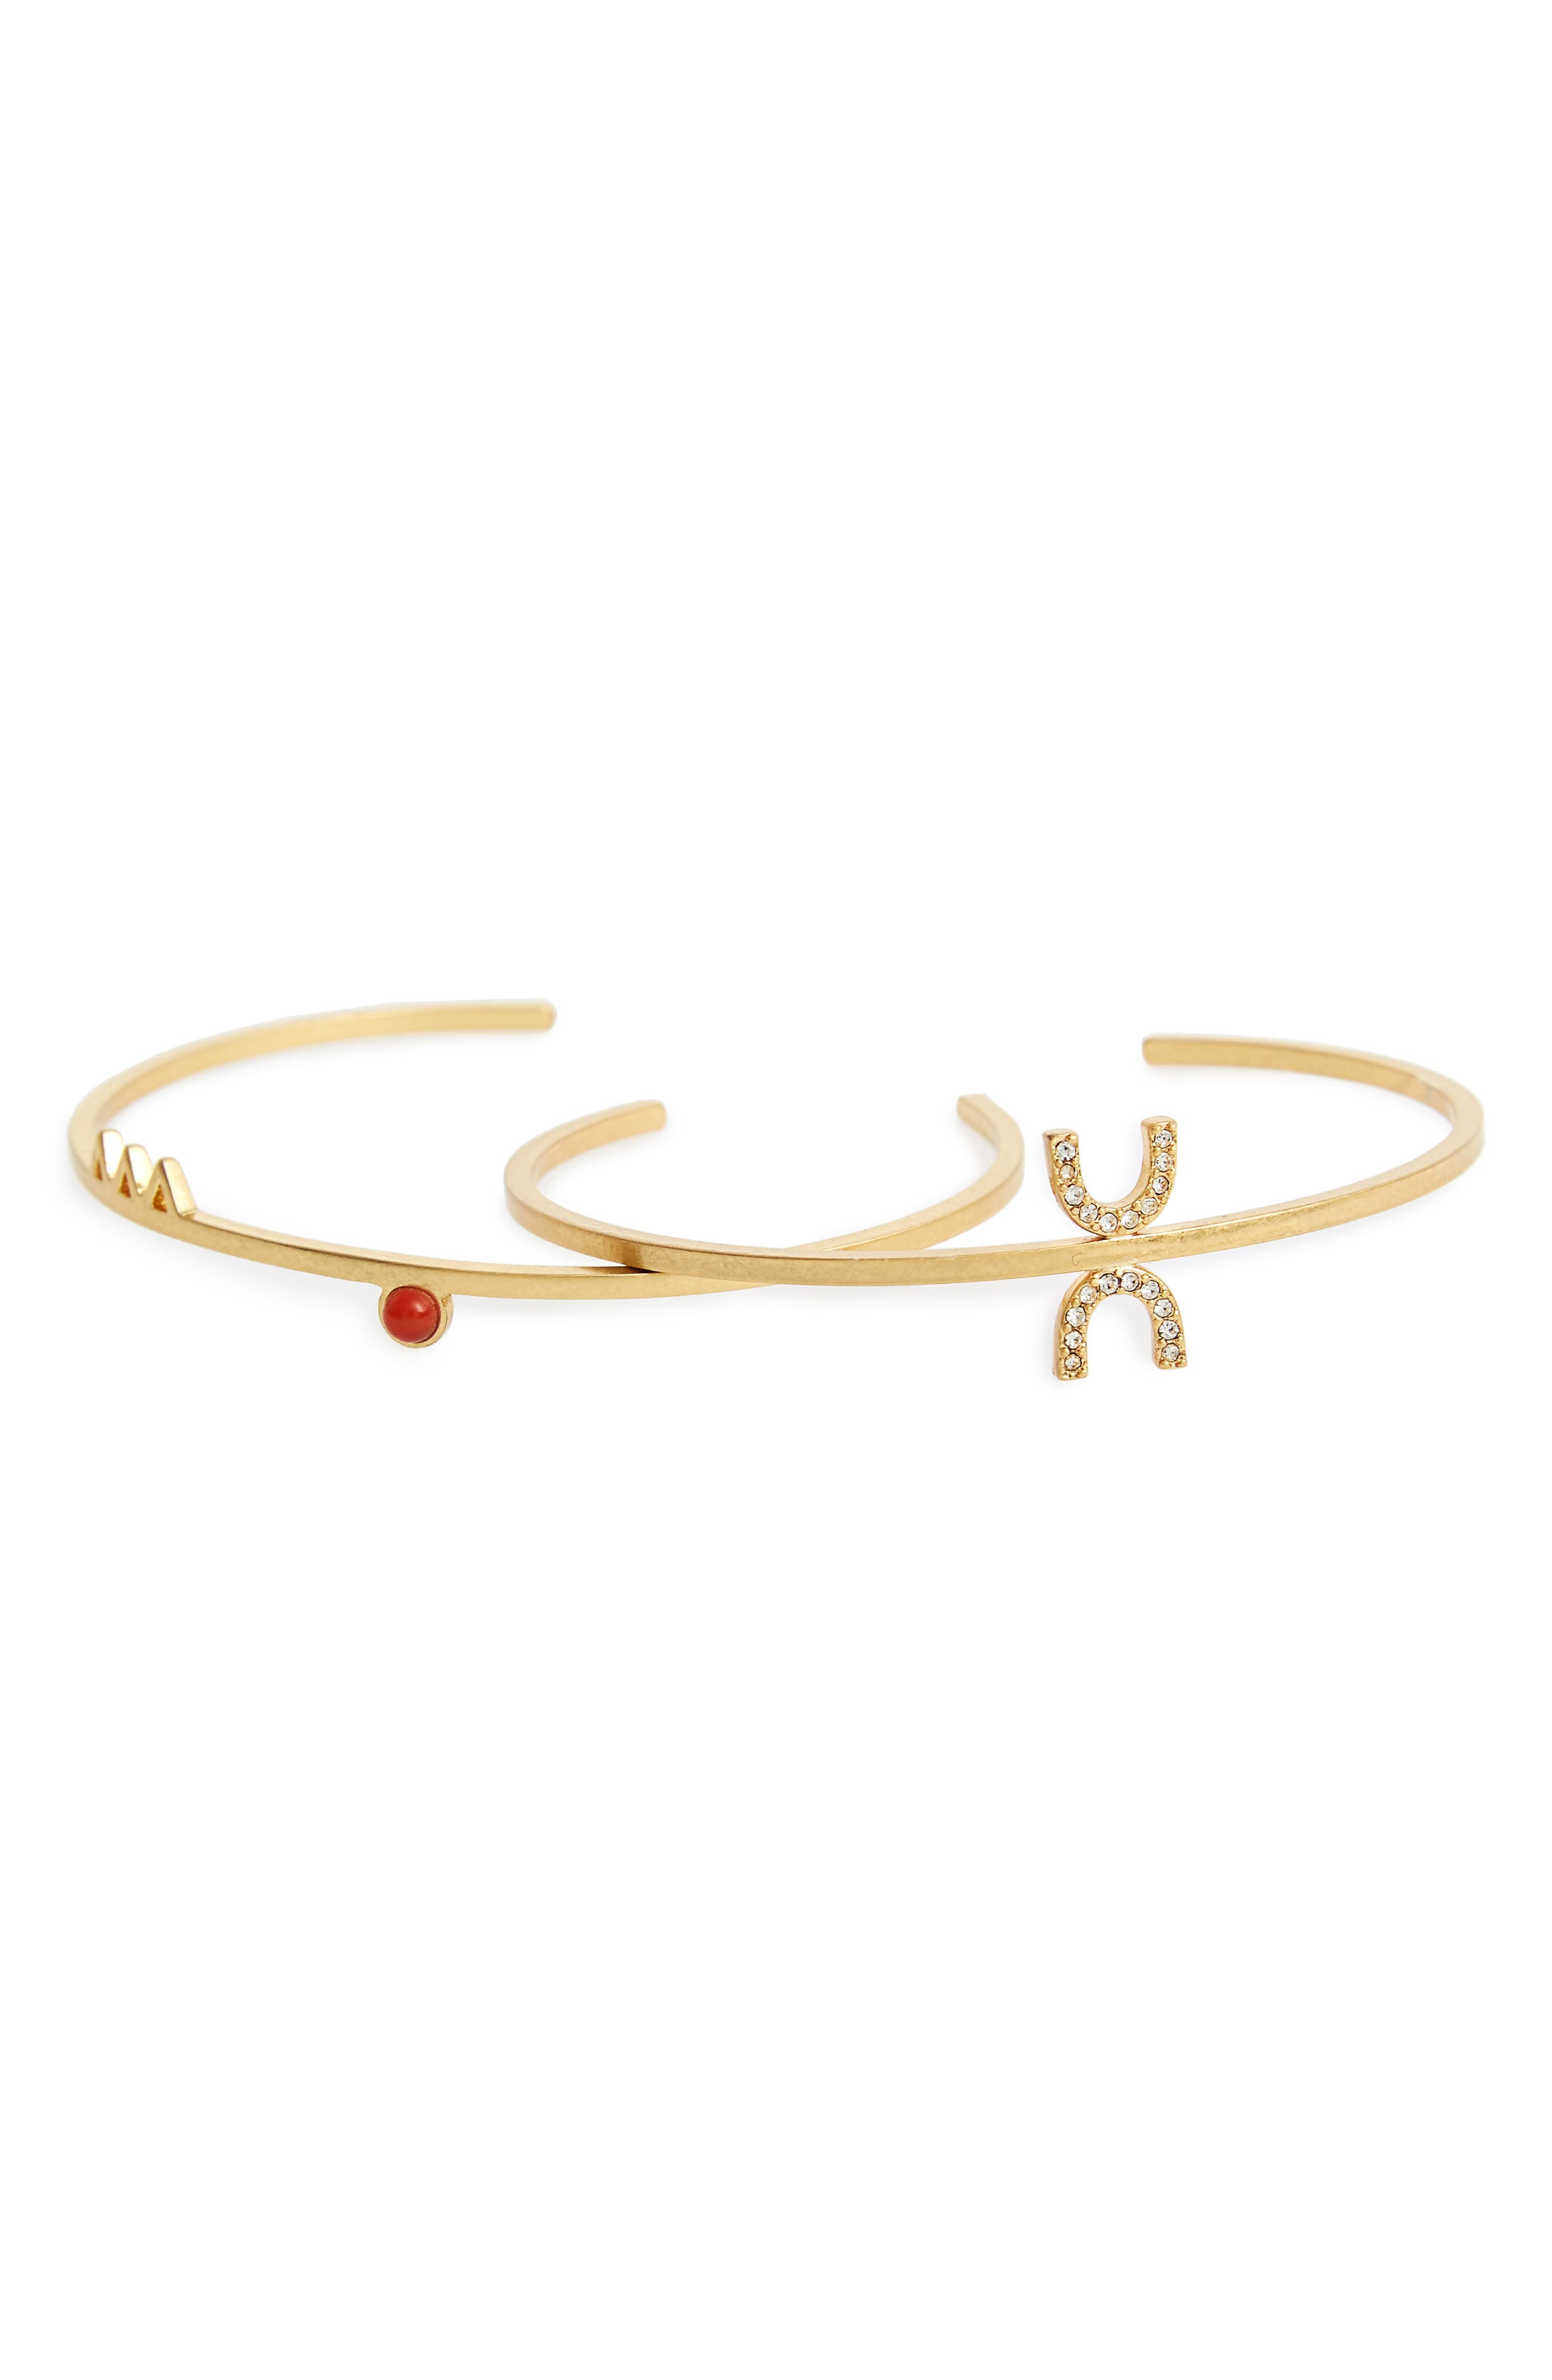 Main Image - Madewell Tiny Jewels Set of 2 Cuffs